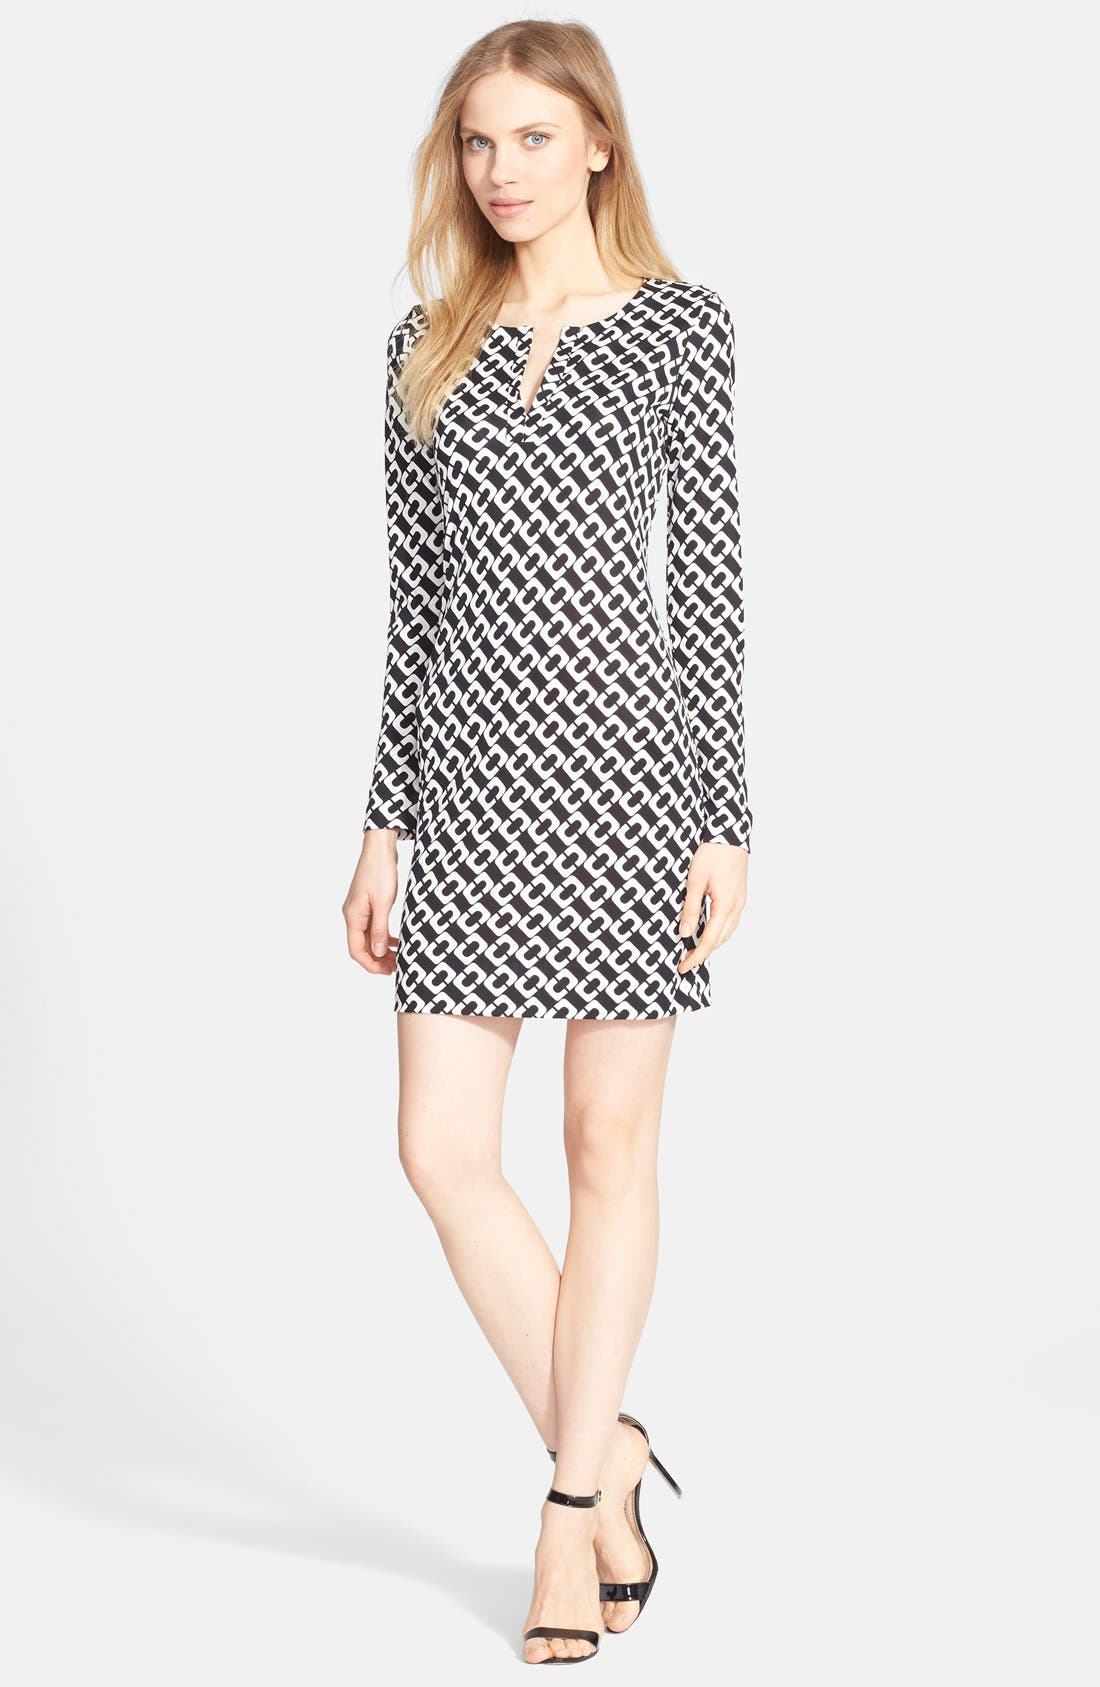 Alternate Image 1 Selected - Diane von Furstenberg 'Reina' Silk Shift Dress